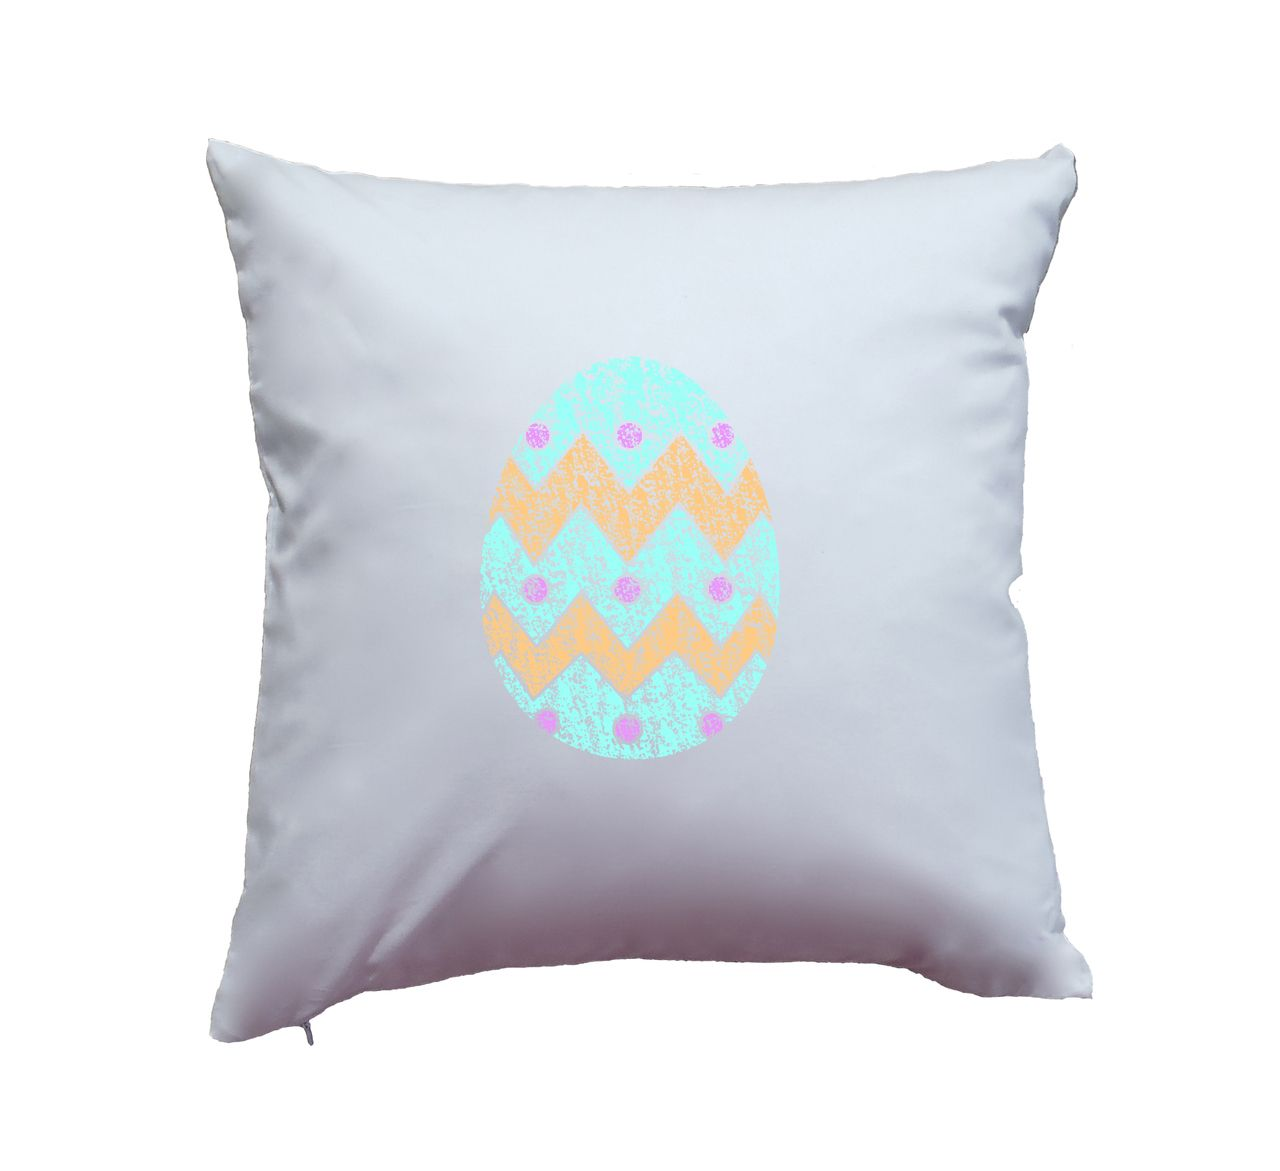 Apericots pillow cover with easter egg easter print design on